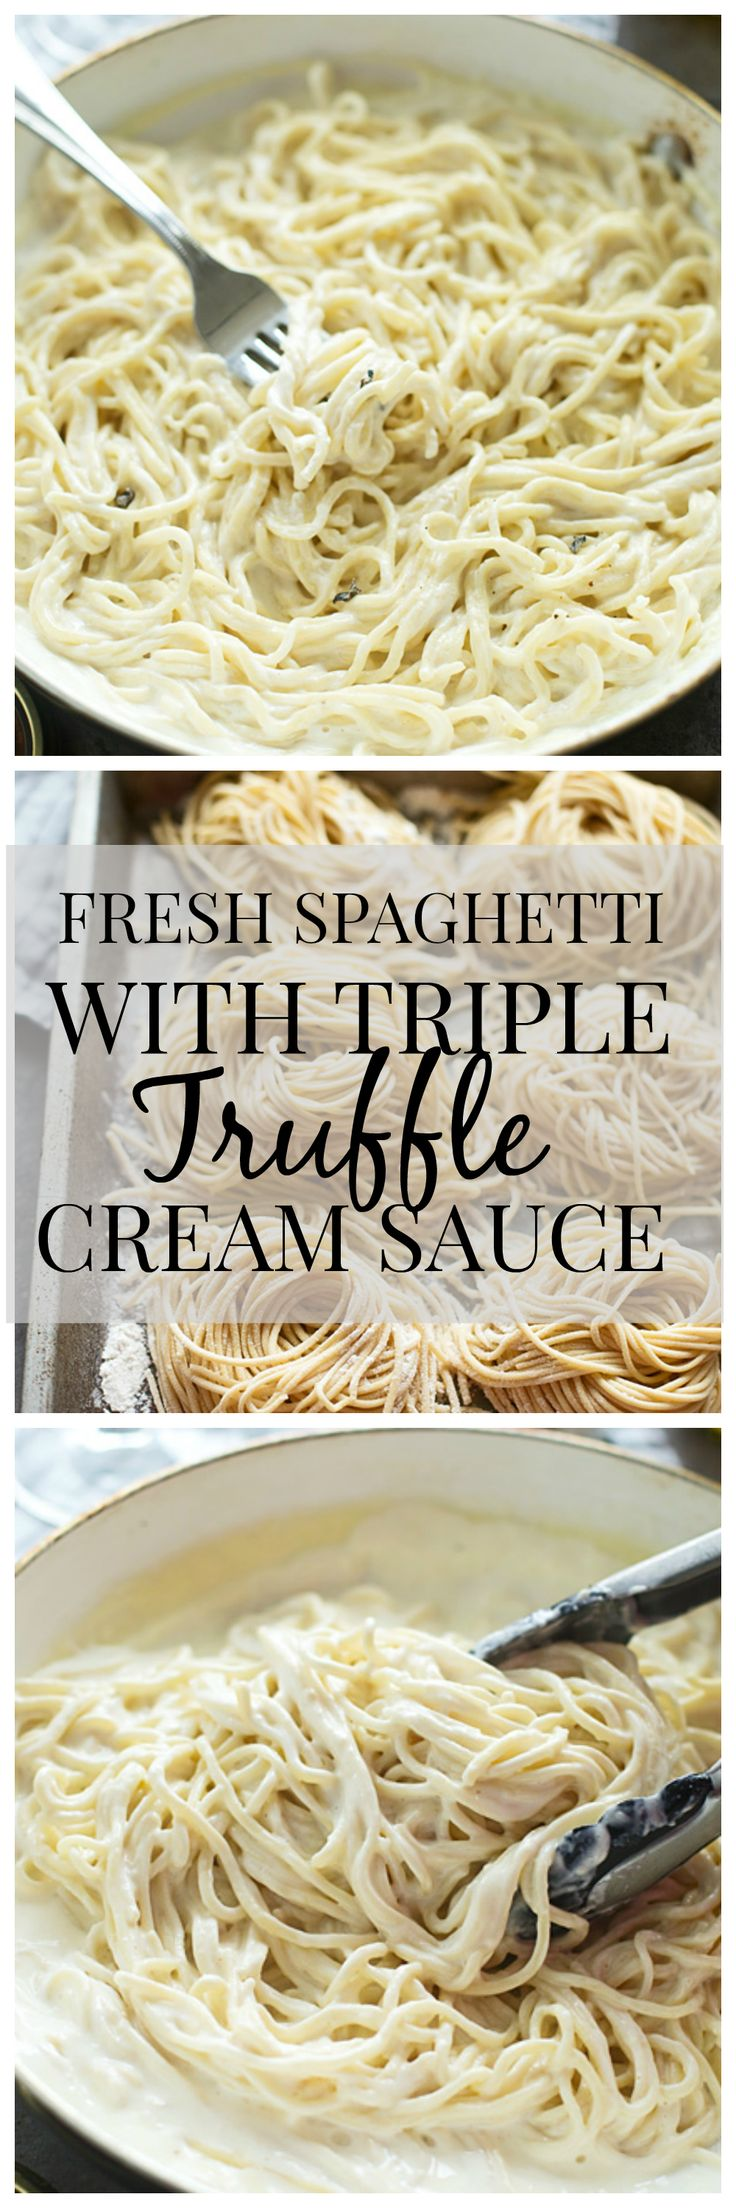 Fresh Spaghetti with Triple Truffle Cream Sauce